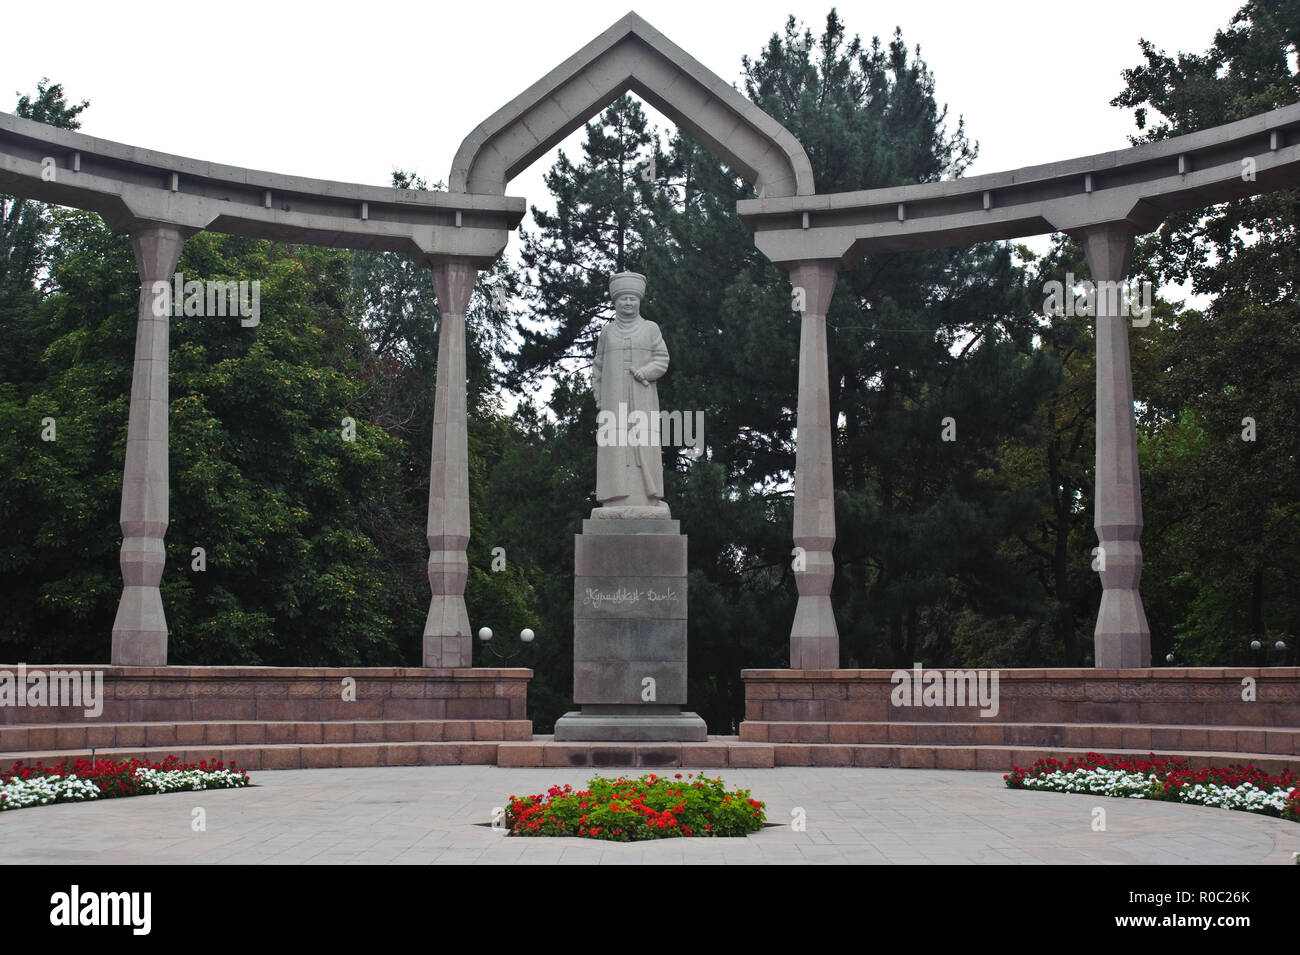 Statue representing Kurmanjan Datka ( 1811-1907), a female kyrgyz ruler now highly respected in Kyrgyzstan. - Stock Image